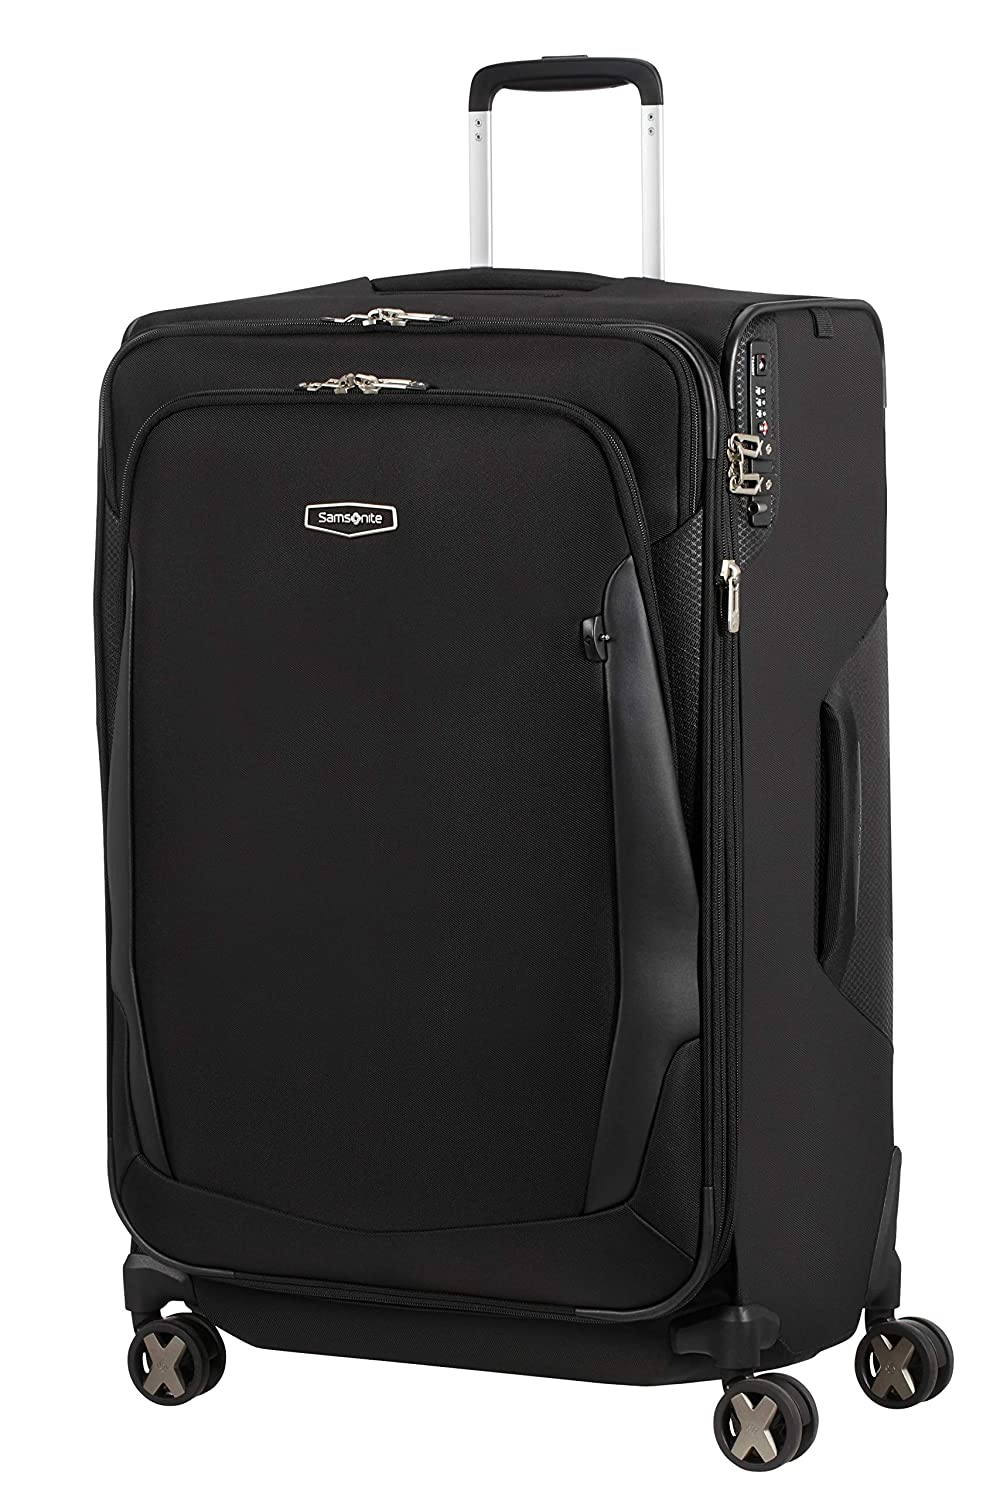 Samsonite X'Blade 4.0 - Spinner L - Maleta expansible, 78 cm, 127 L, Color Negro